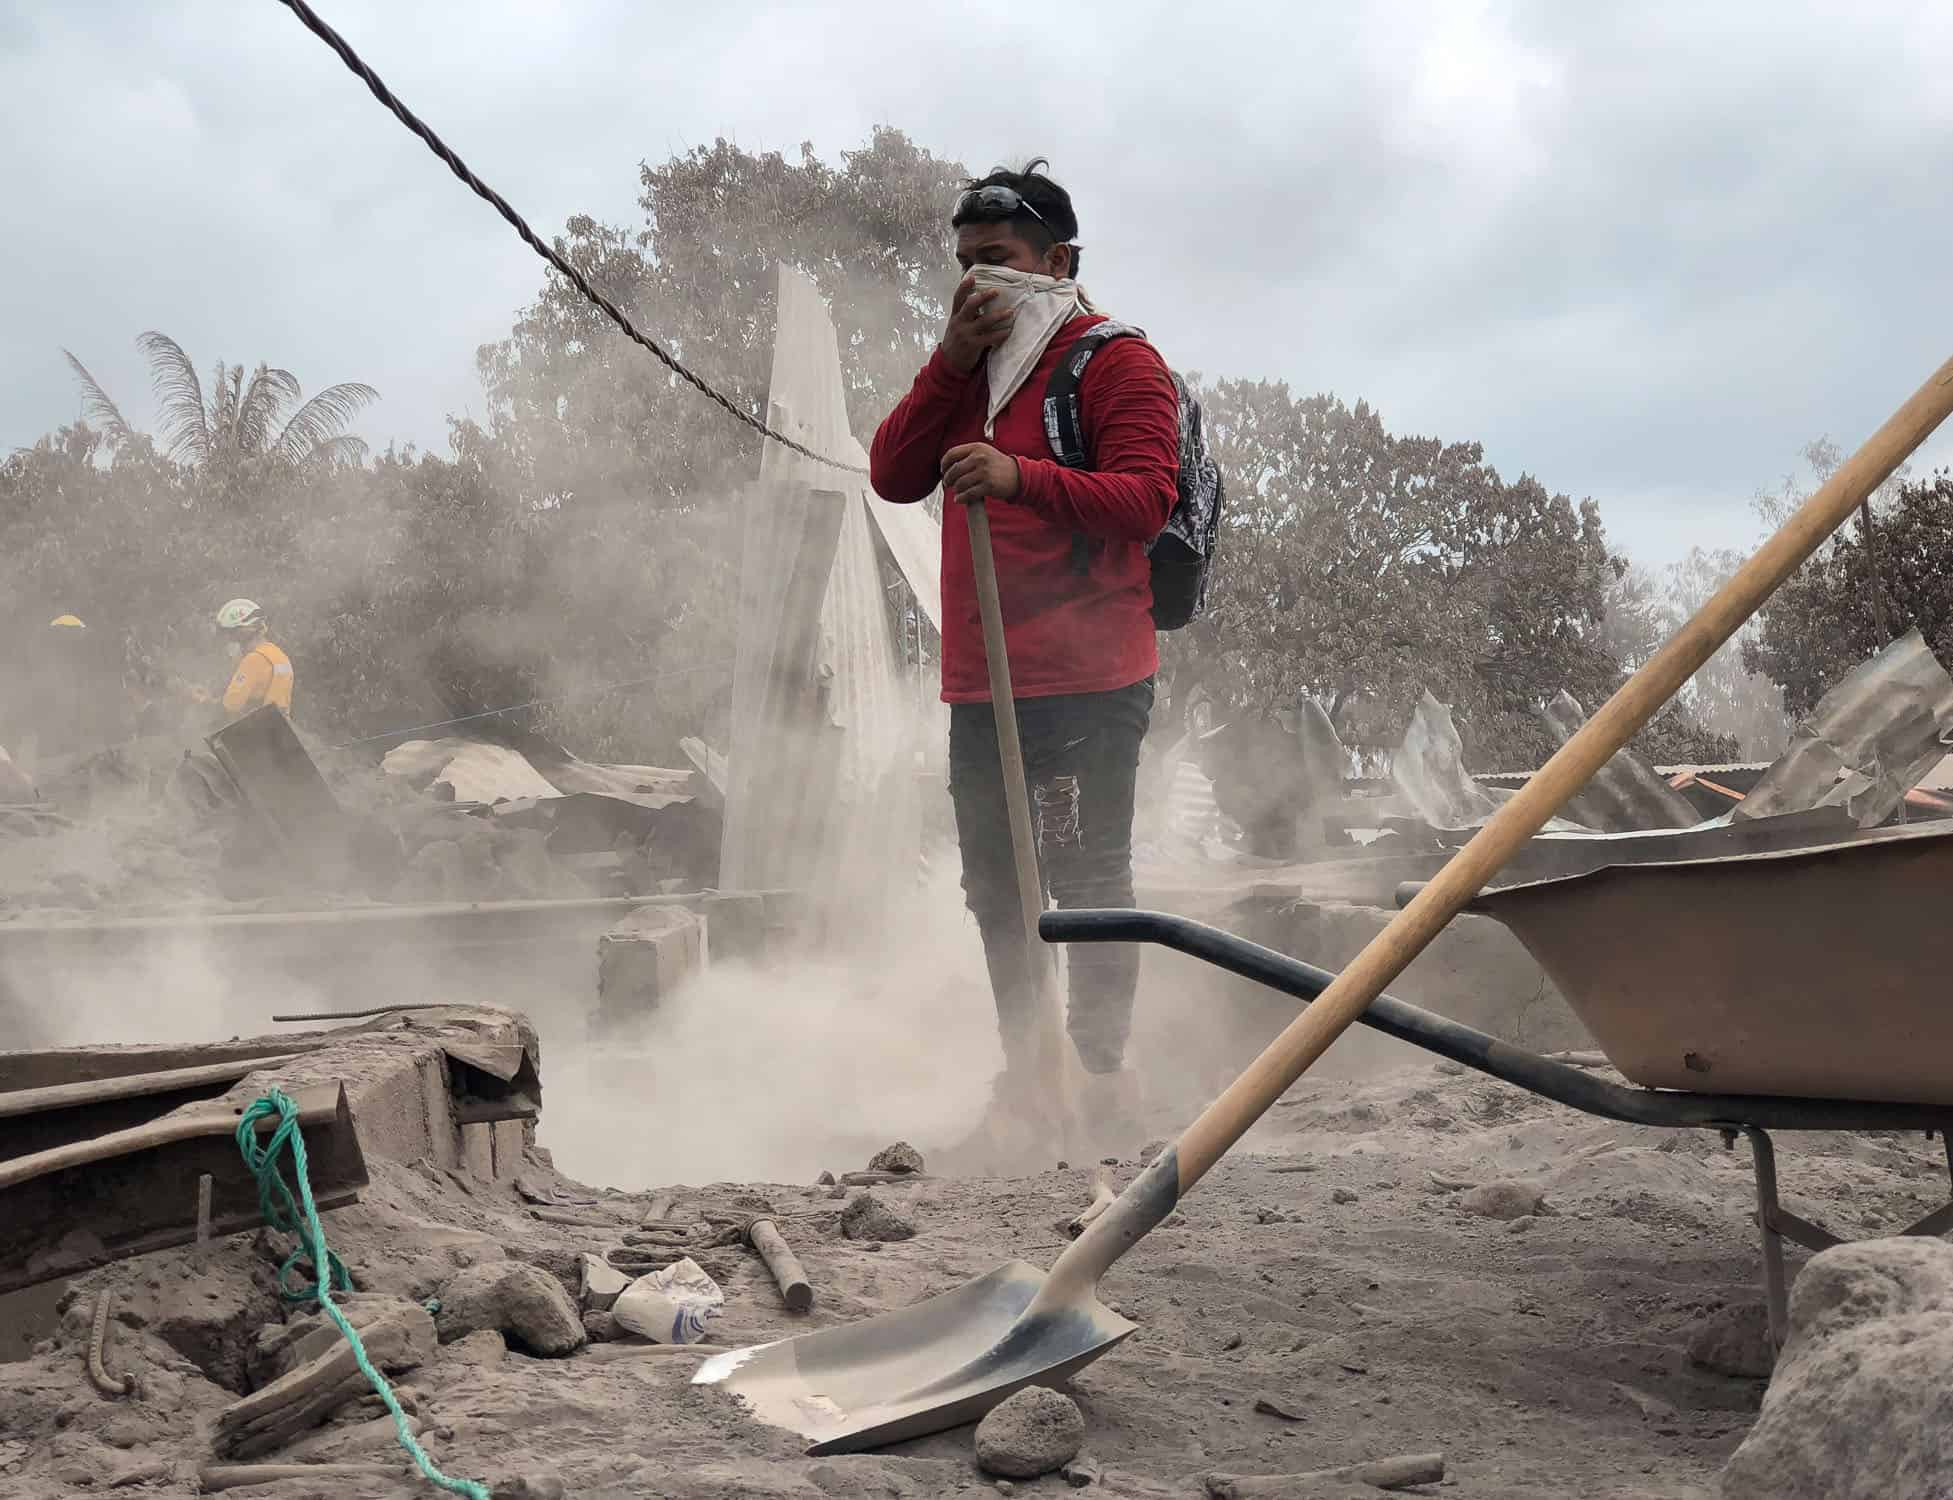 Nearly 200 people are still missing after the Fuego Volcano erupted in Guatemala. Samaritan's Purse is assisting people in desperate need in Jesus' Name. Samaritan's Purse, through local partners, is distributing emergency shelter, food, hygiene kits, and chemical filtration masks (due to the volcano's toxic gases).